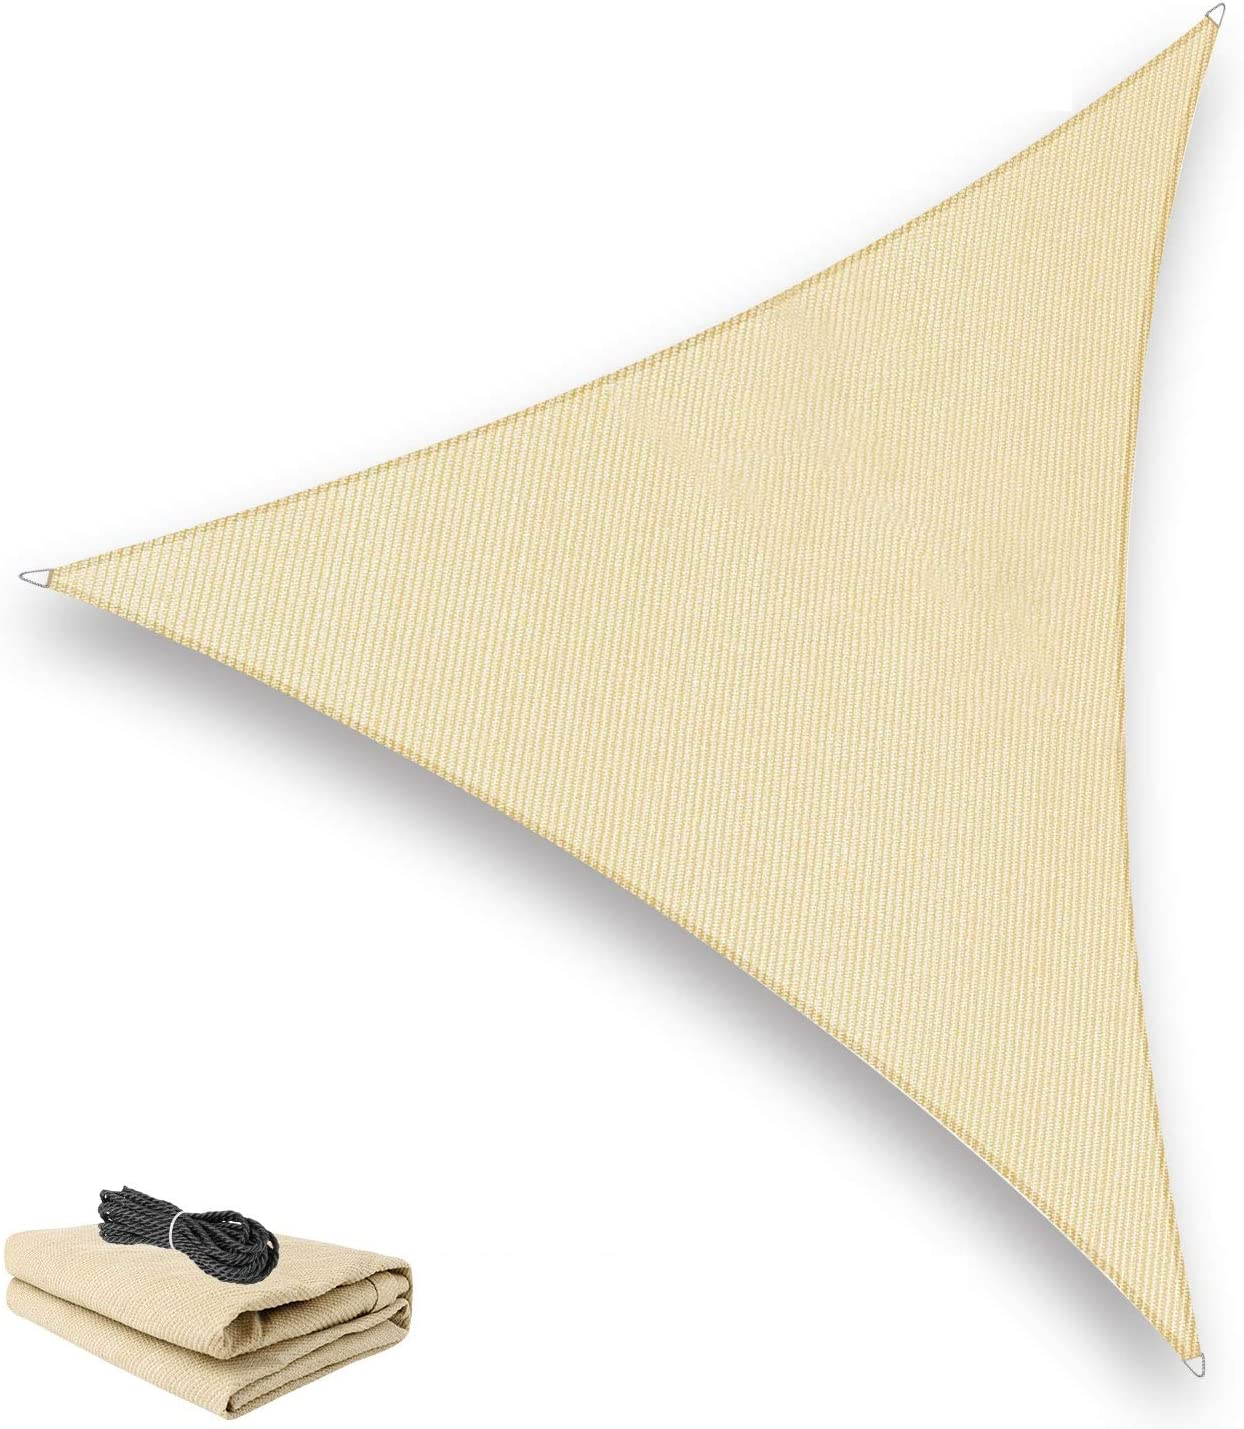 Pansonite 10' x 10'x Triangle Sun Sail New product type OFFicial site Shade Bloc Durable UV